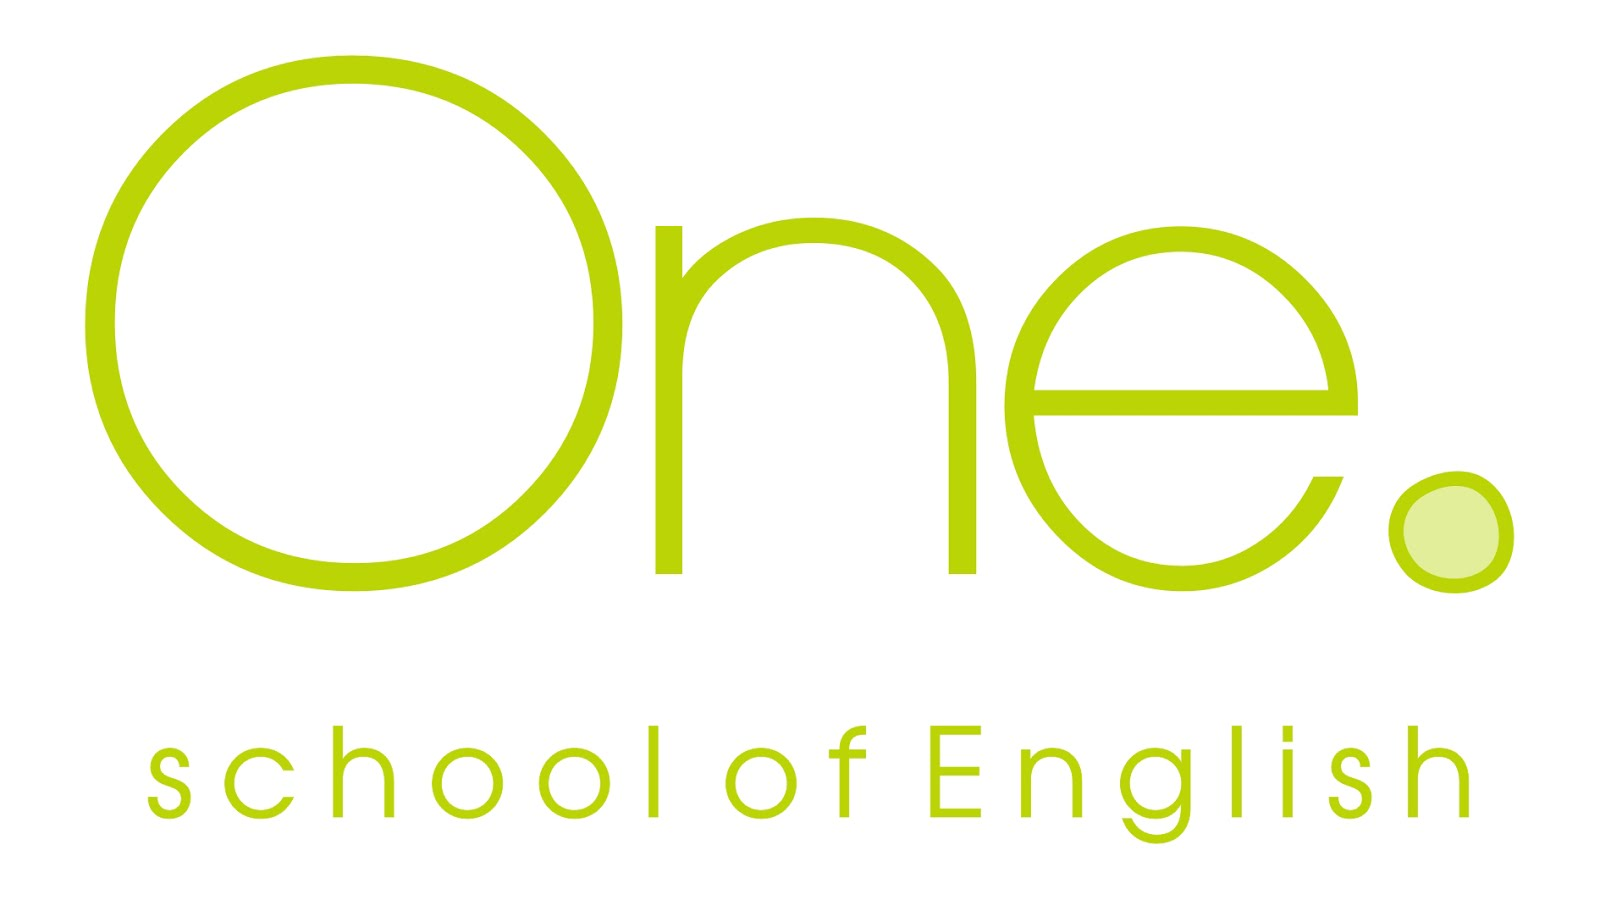 ONE. SCHOOL OF ENGLISH